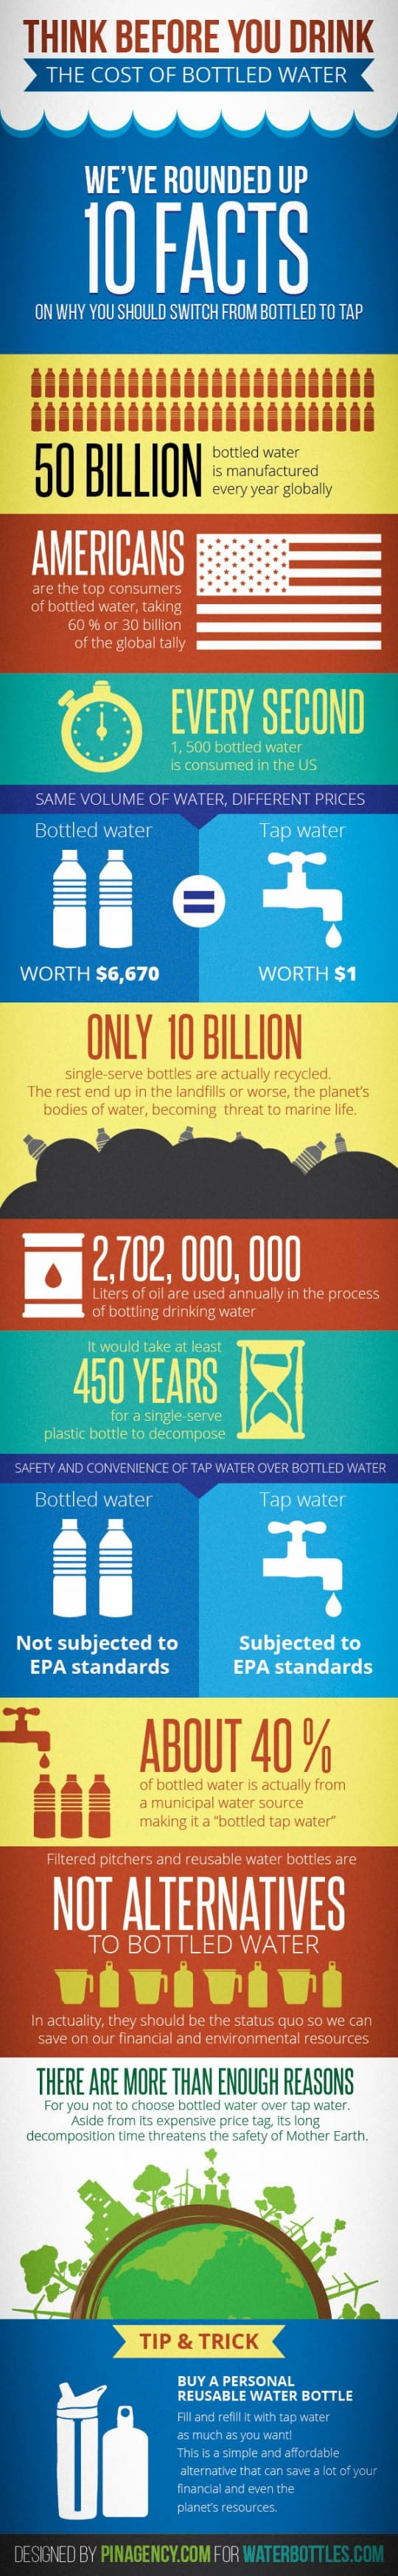 think-before-you-drink-the-costs-of-bottled-water_5379b122d46ee_w540